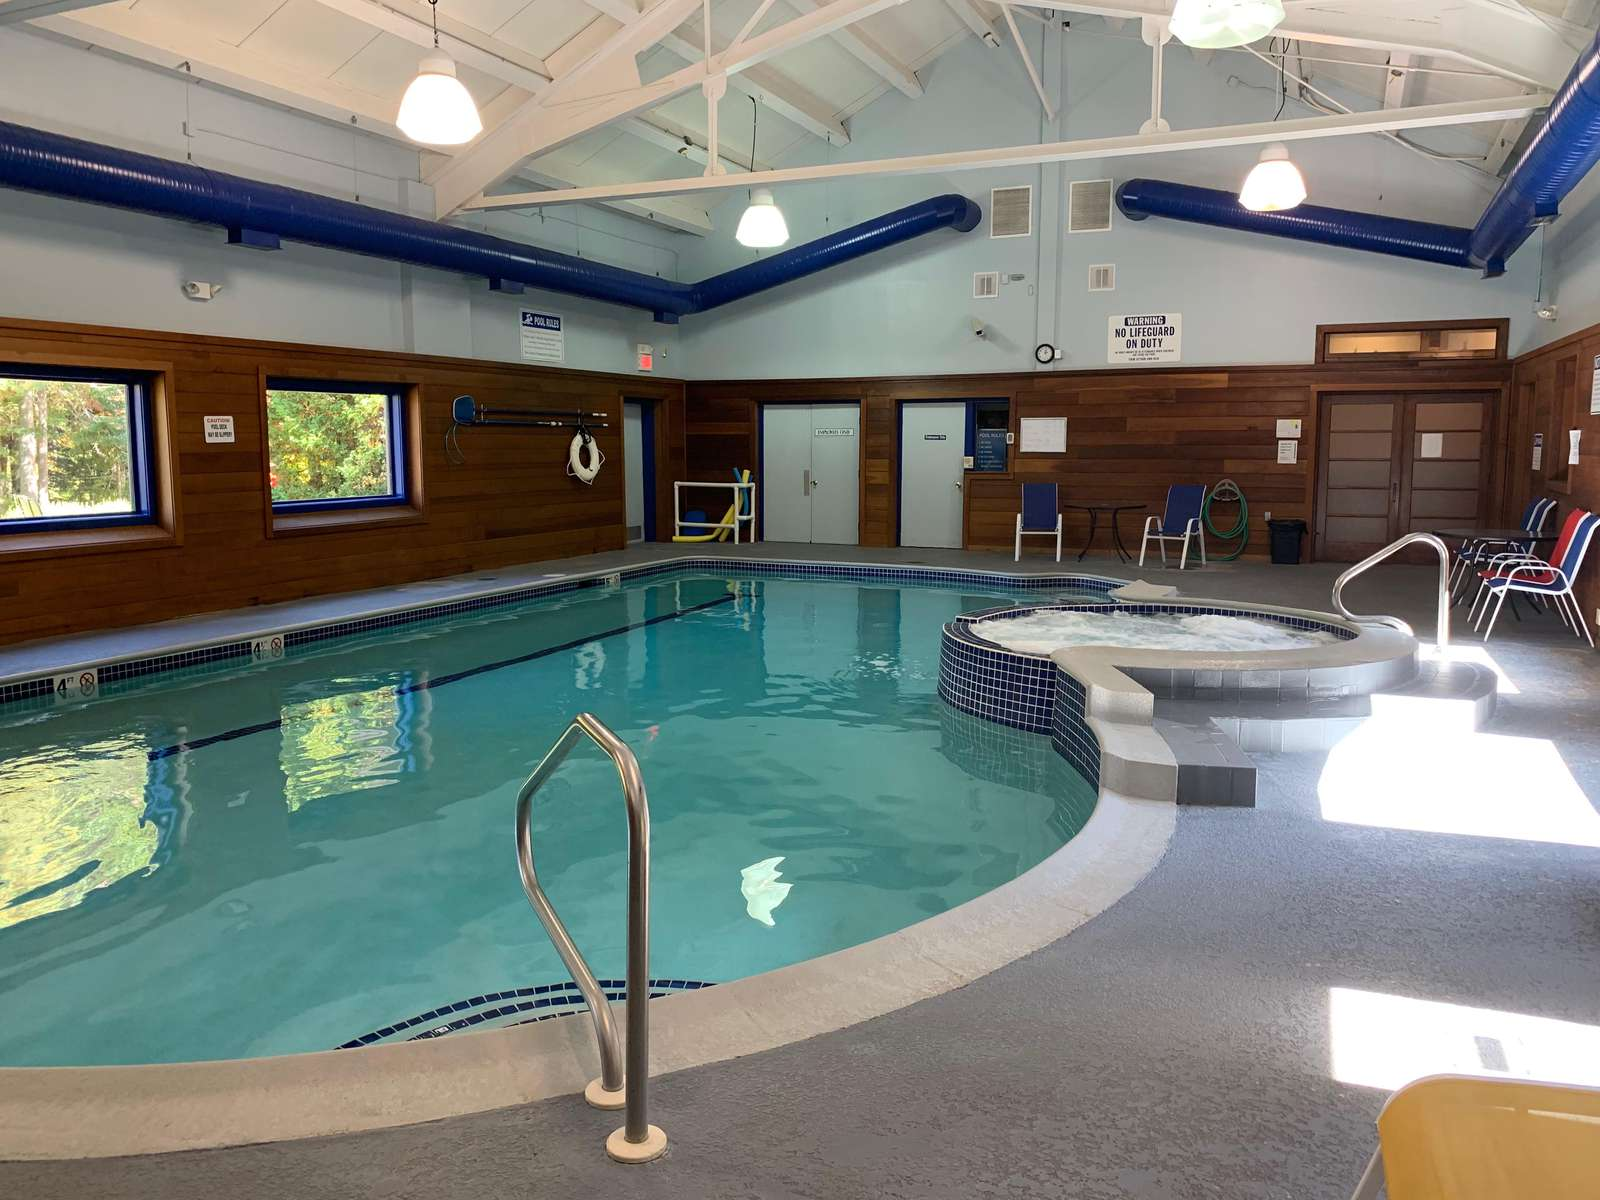 Pool and hot tub in Sugarhouse Amenity Center